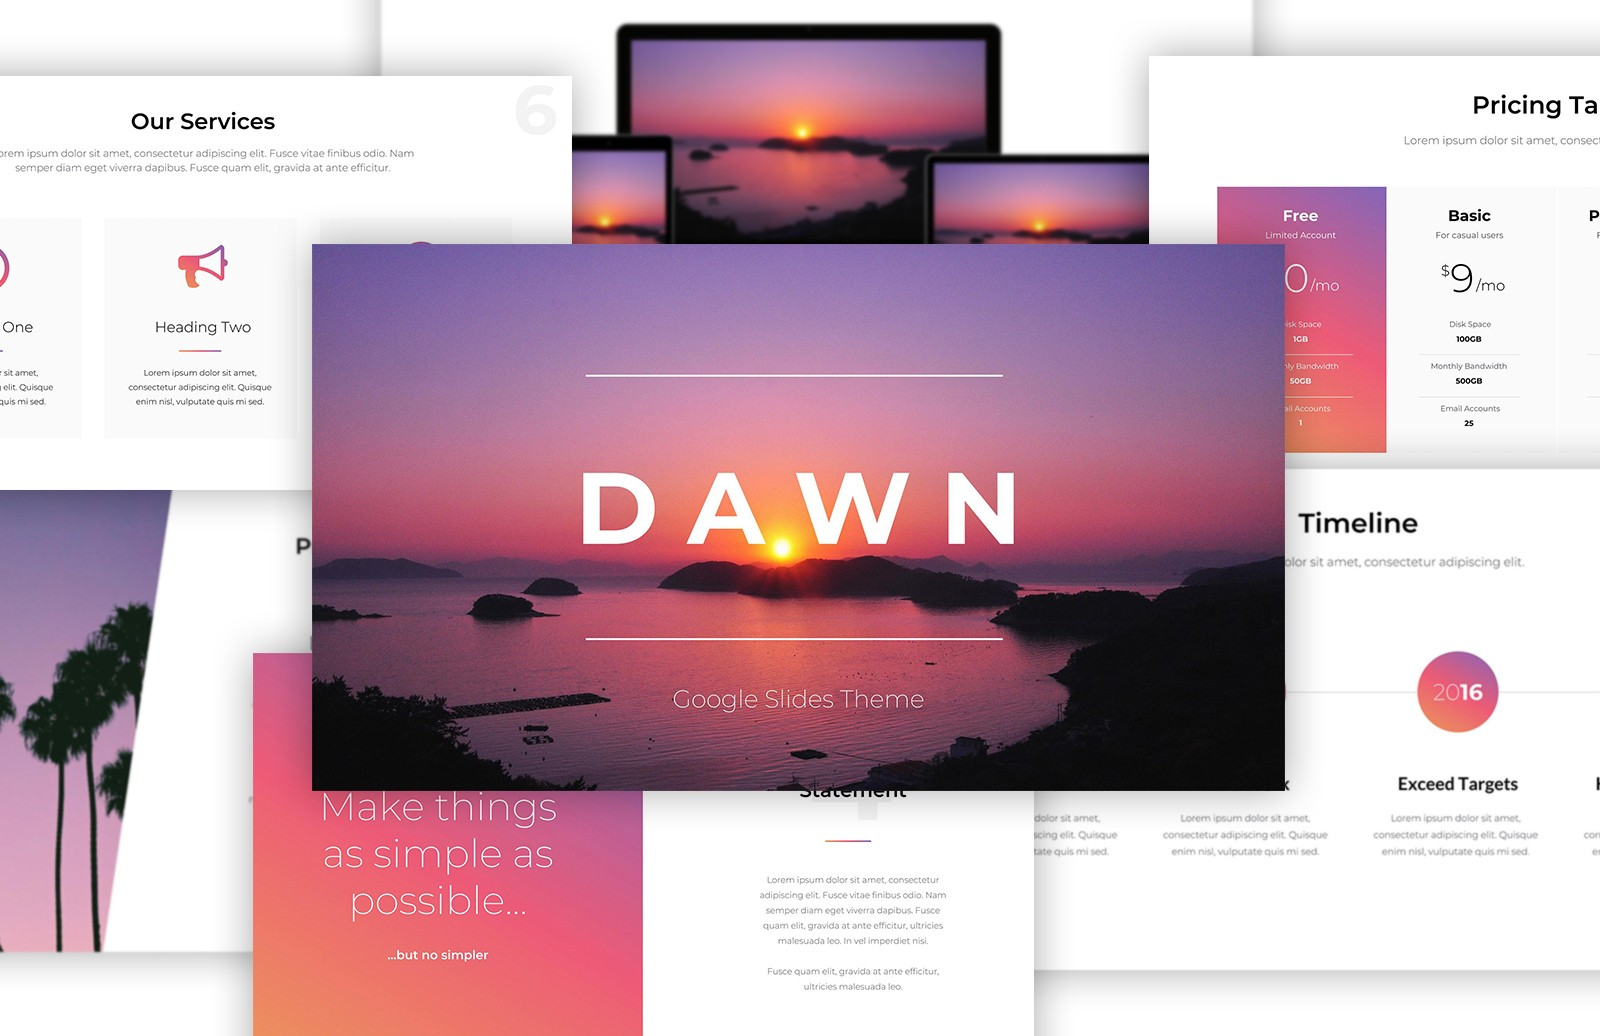 DAWN - Free Google Slides Theme